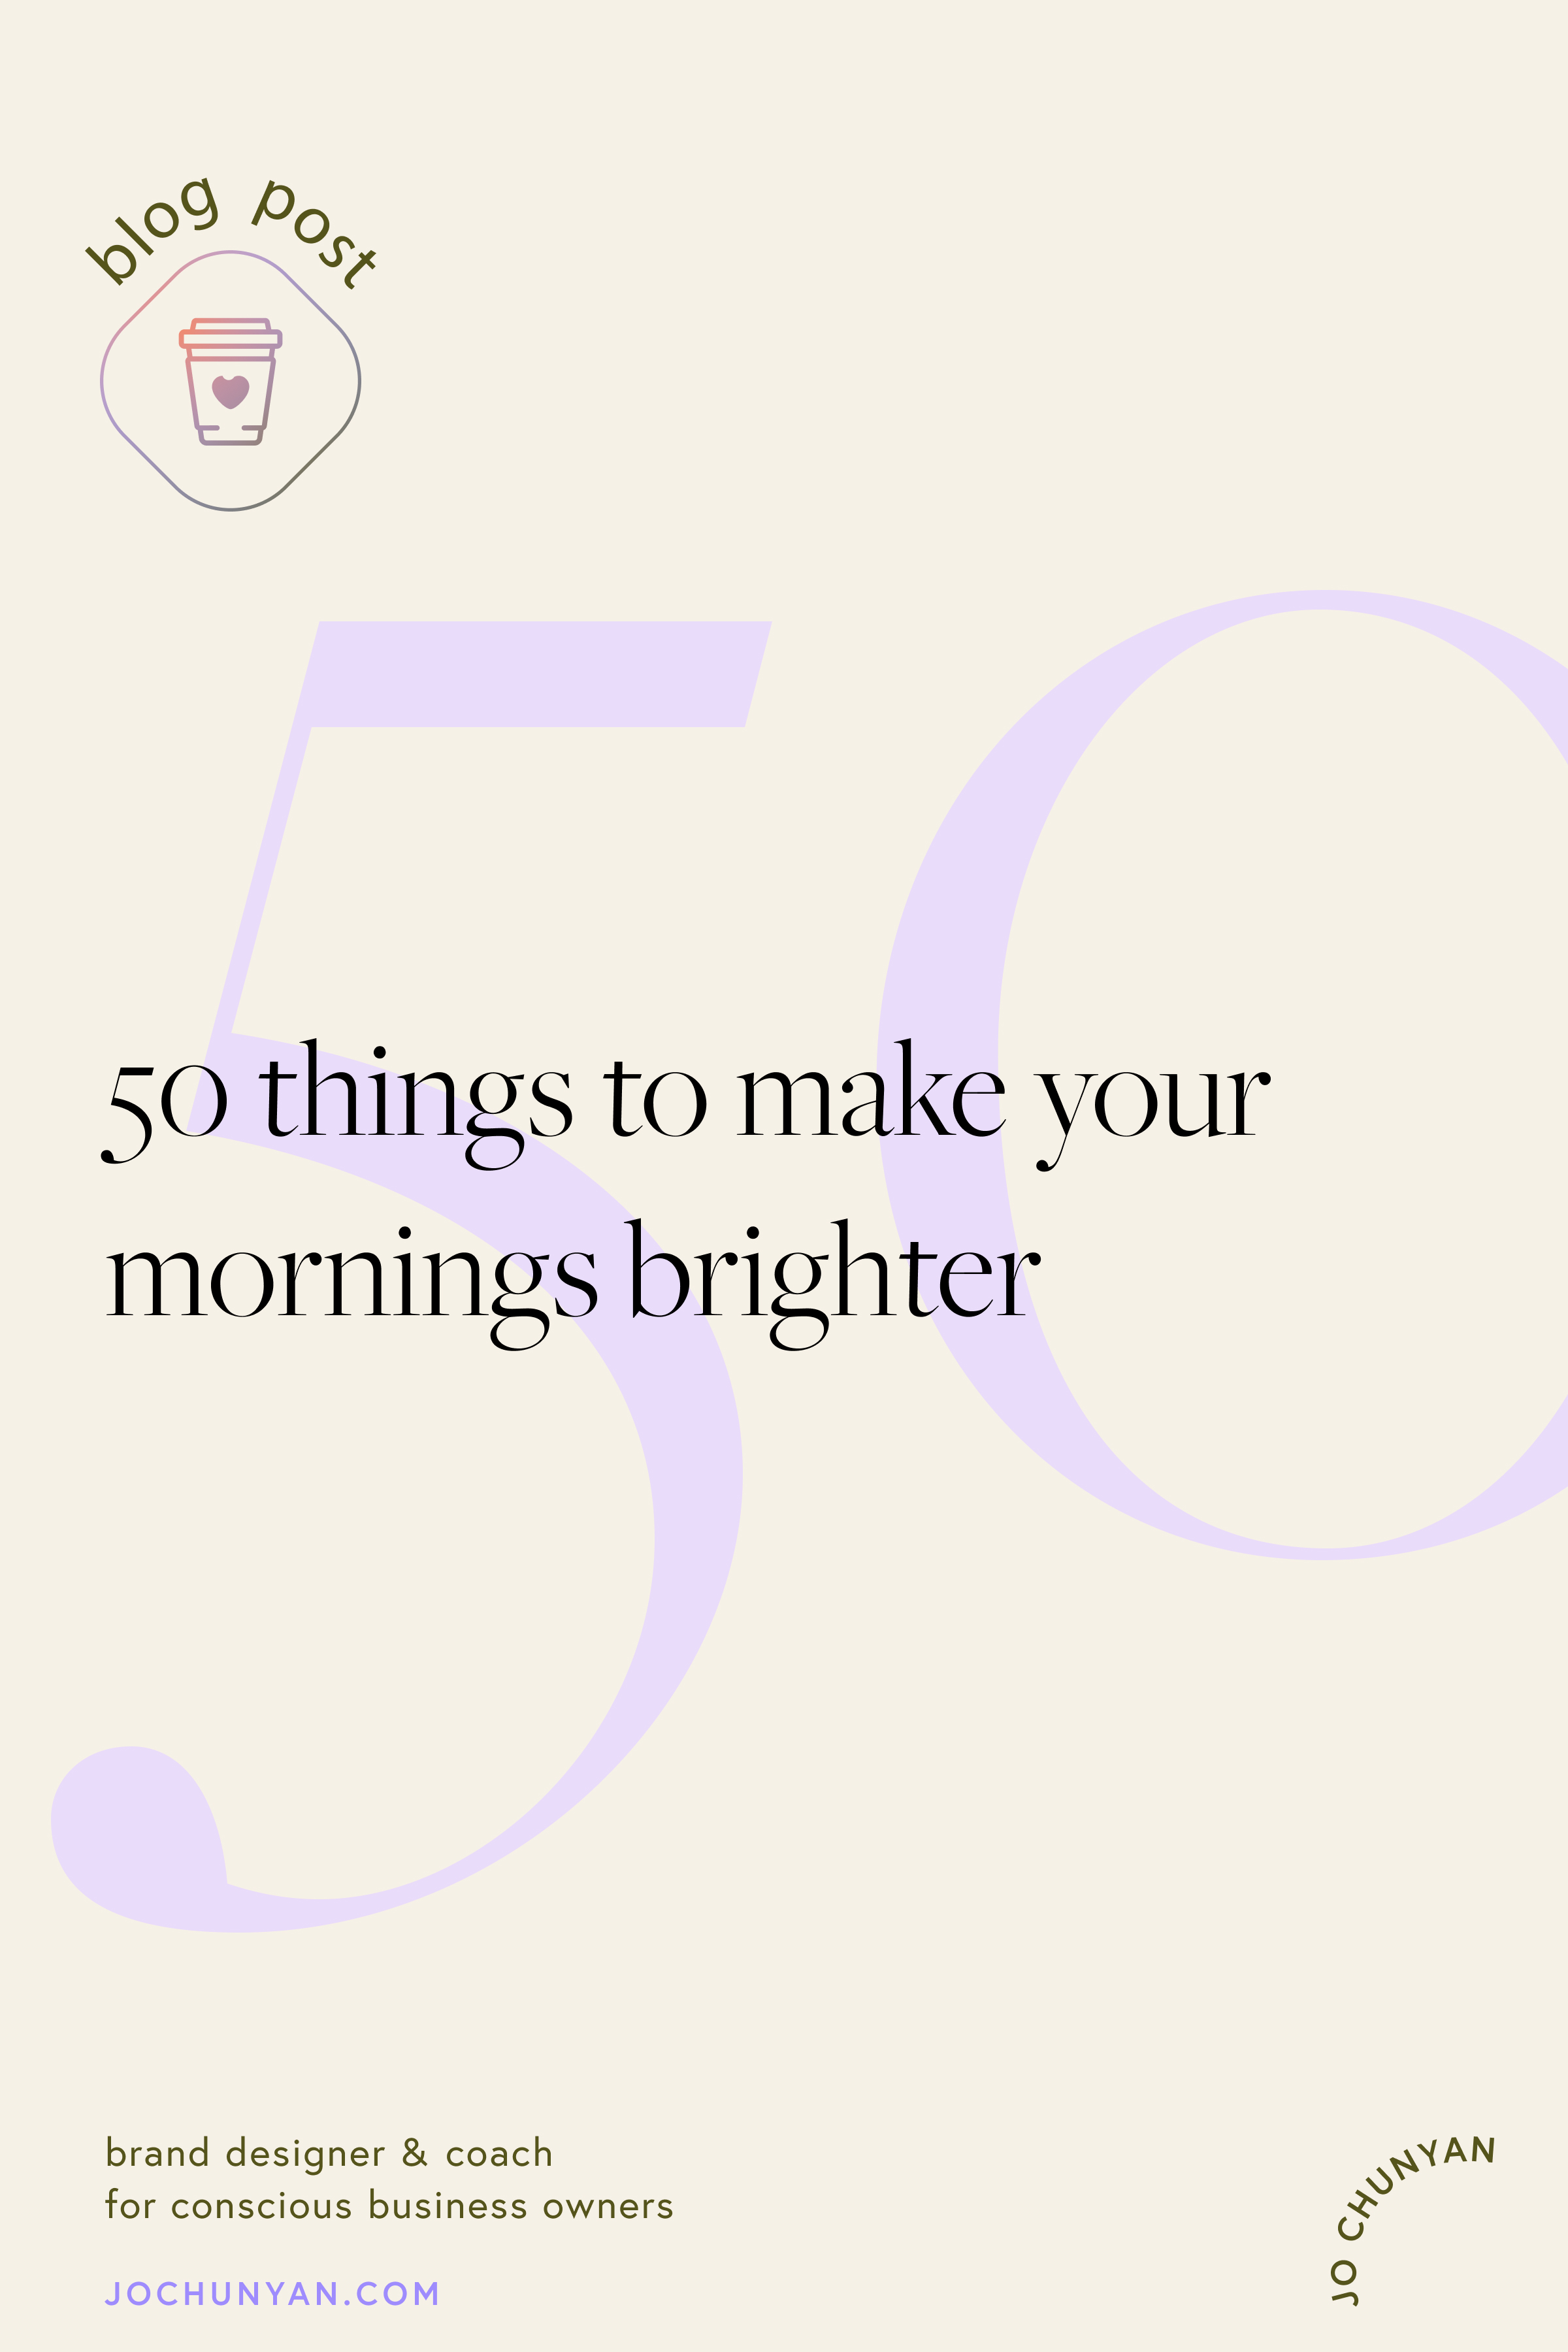 50 things to make your mornings brighter